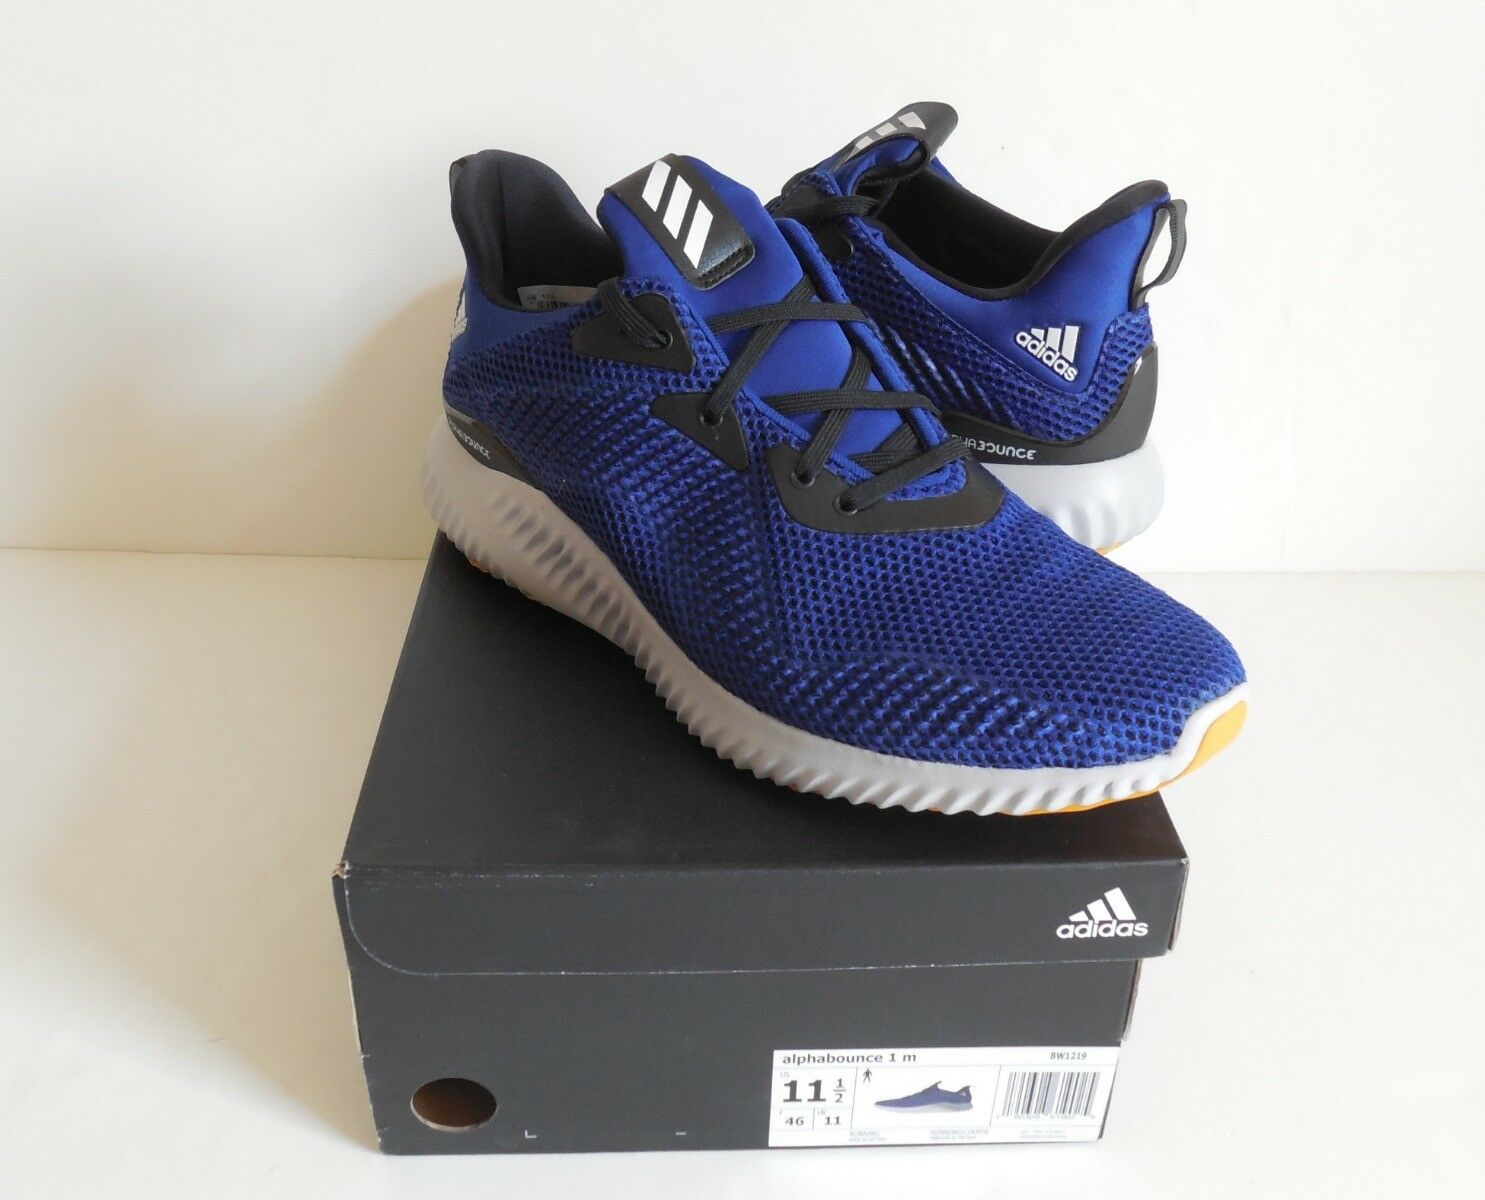 Adidas BW1219 Alphabounce 1 Running Men's Shoes Size 11.5 New